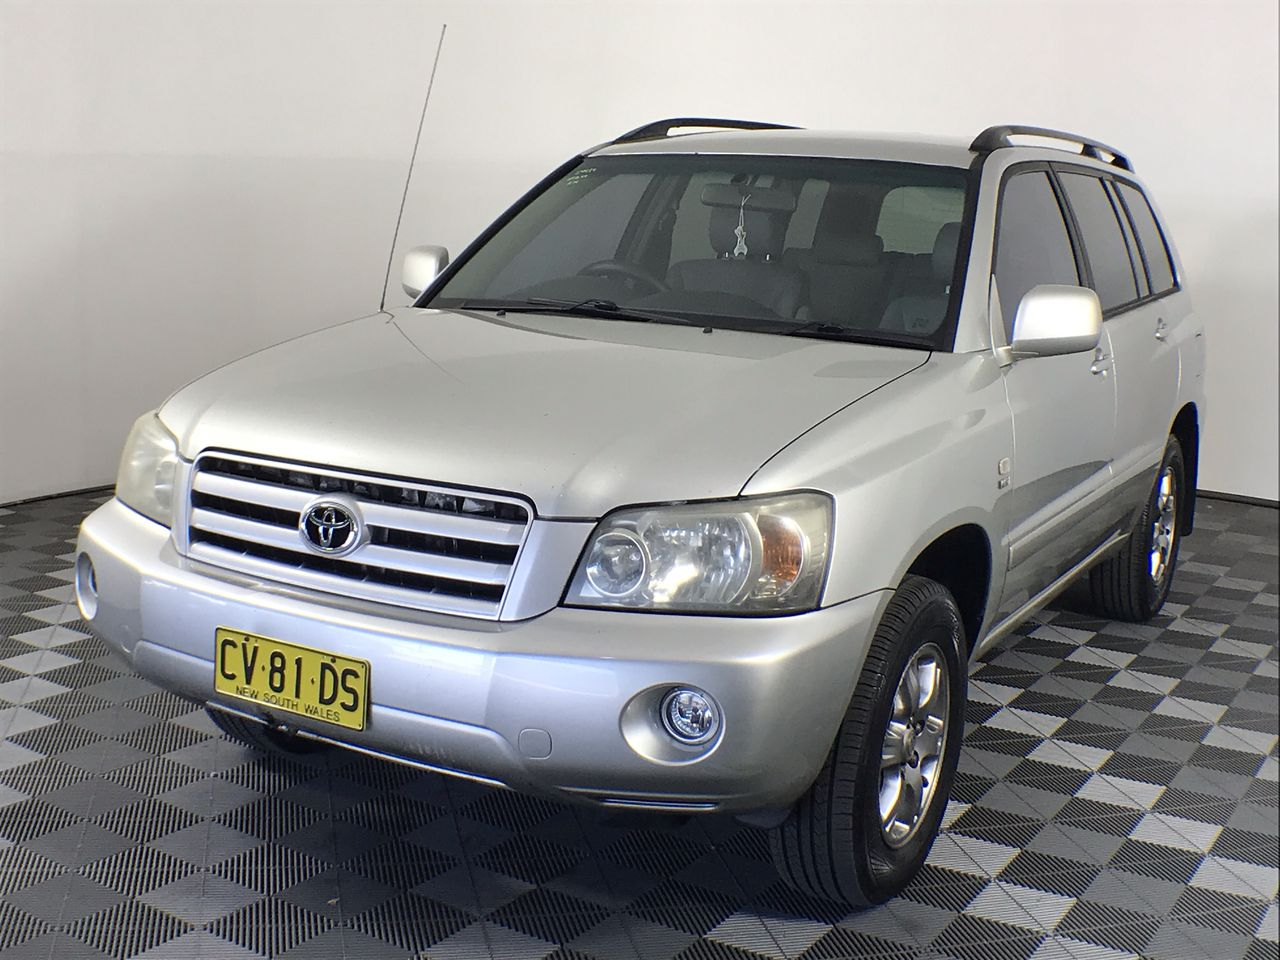 2004 Toyota Kluger CVX (4x4) Automatic 7 Seats Wagon